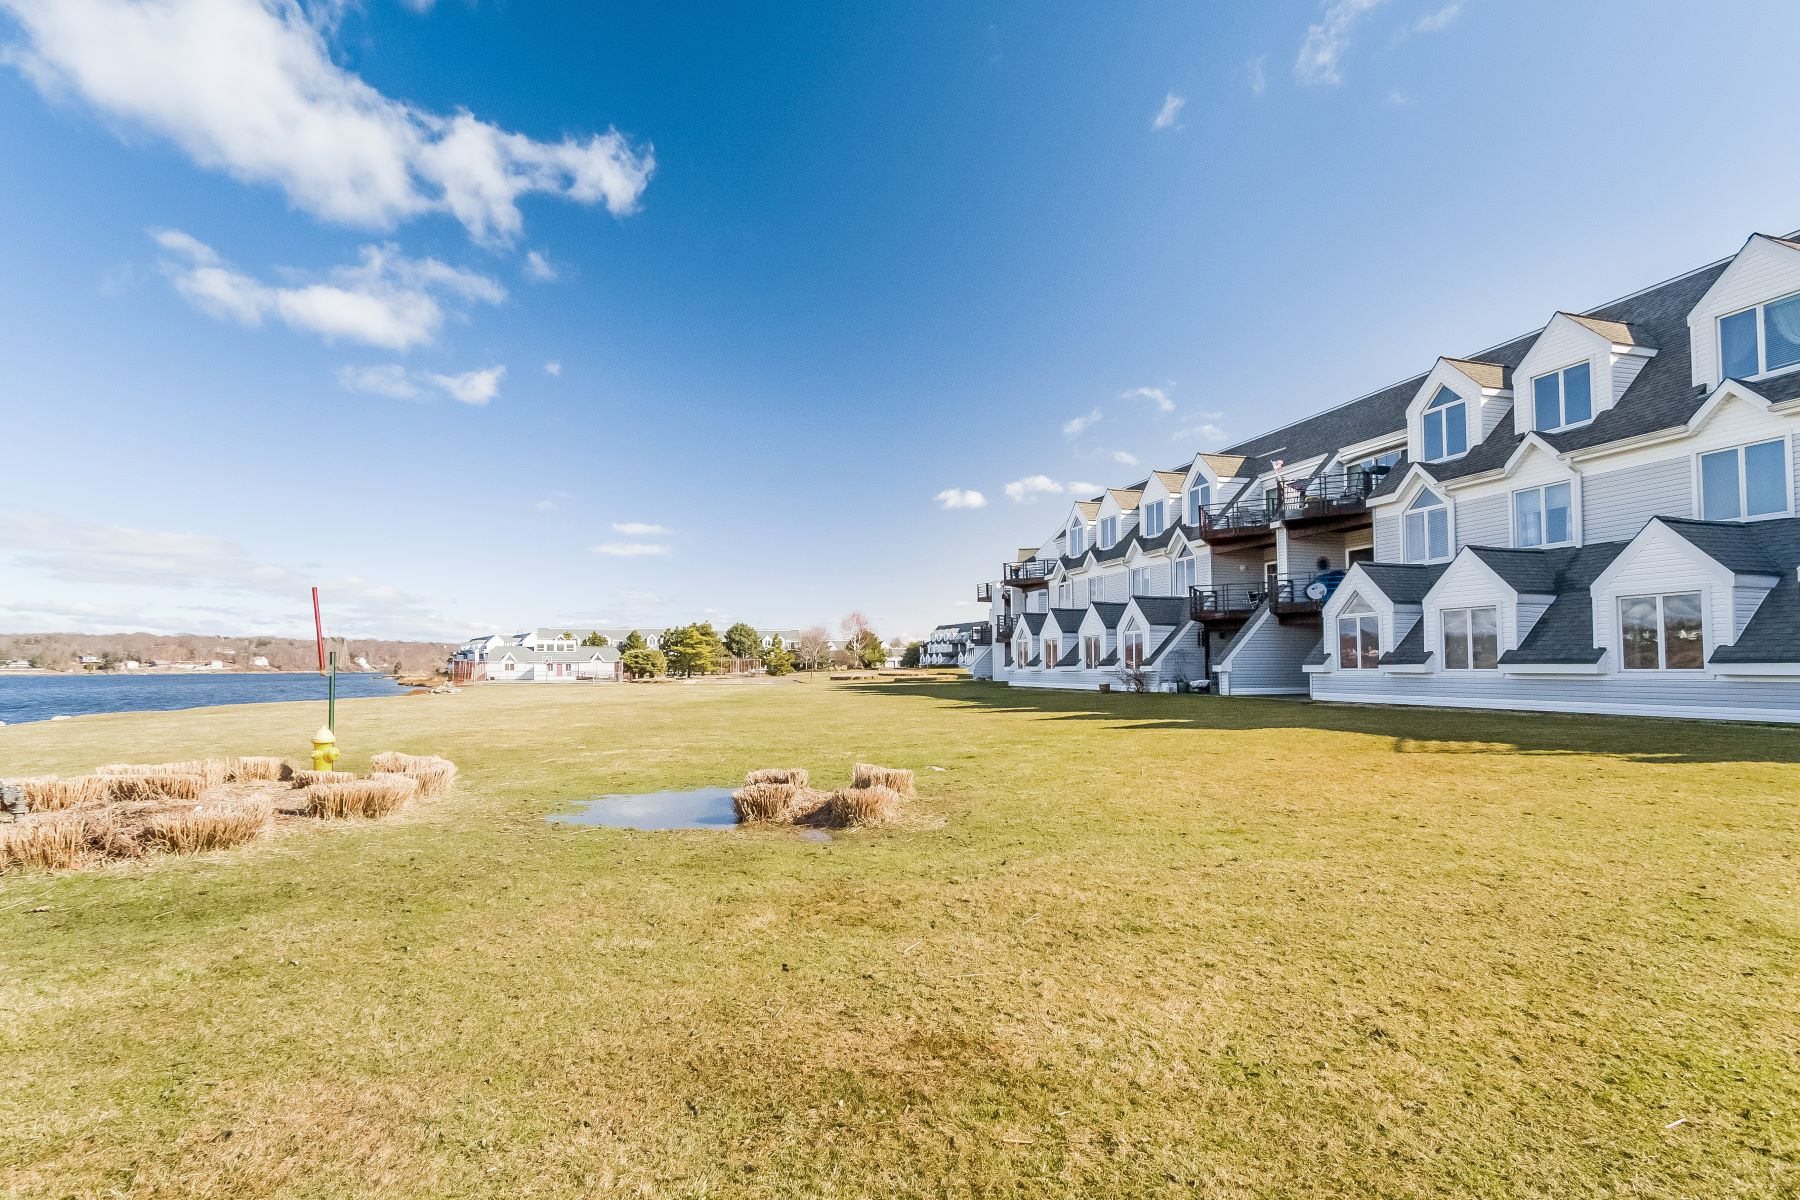 Condominium for Sale at Direct Waterfront Location 1416 Windward 1416 Milford, Connecticut 06461 United States